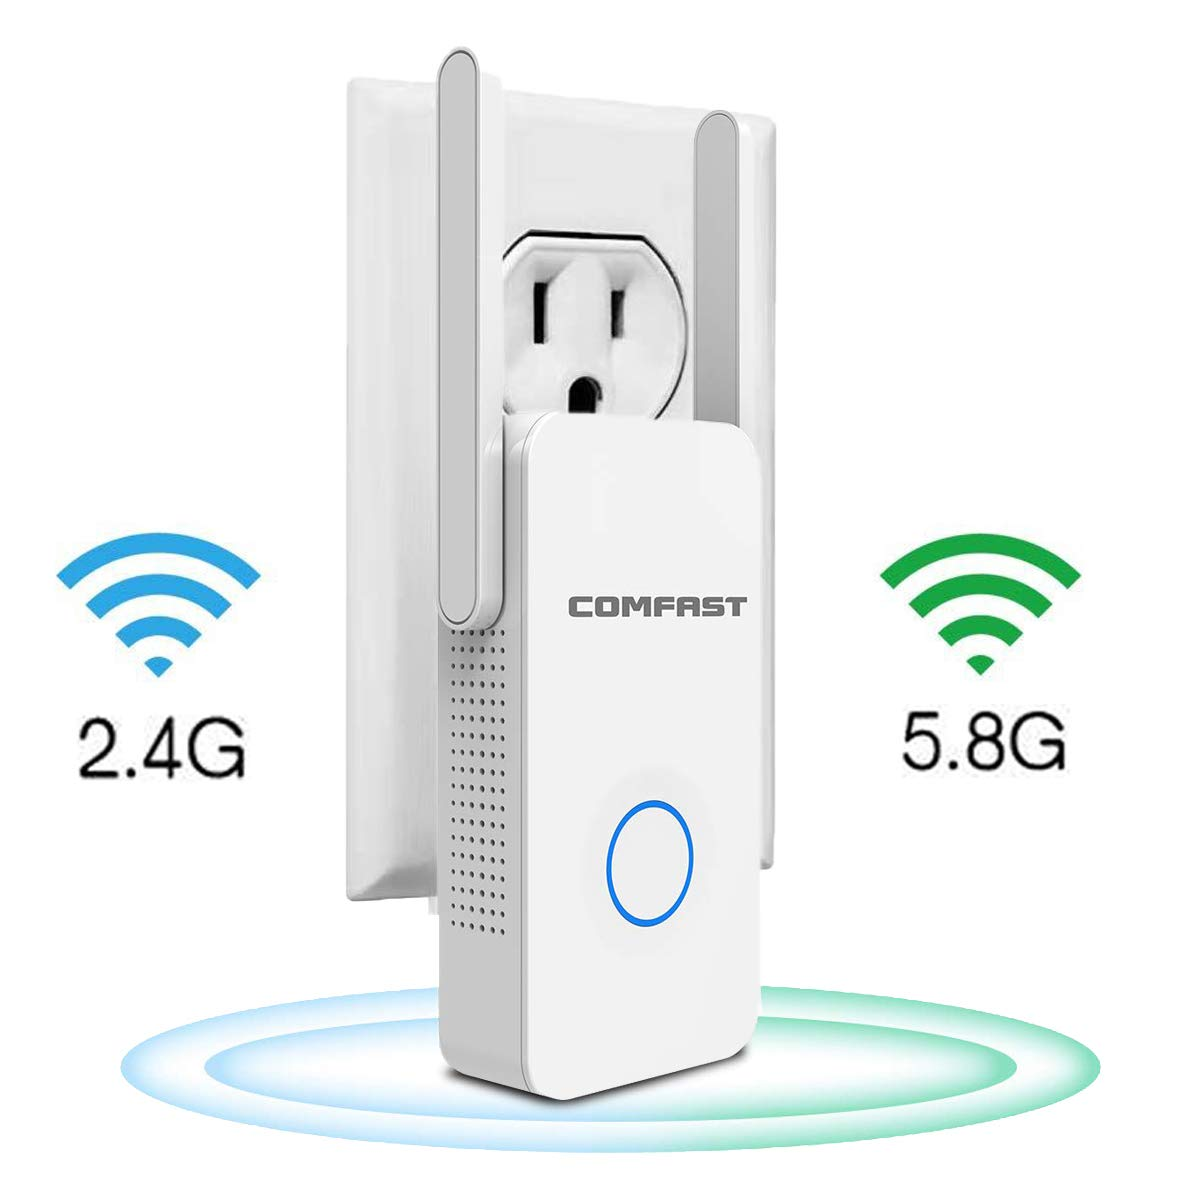 【2019 Newest】 WiFi Range Extender Up to 1200 Mbps Dual Bands 2.4G&5.8G Repeater WiFi Extenders Signal Booster Works with Any Router(1200M) by Flow.month